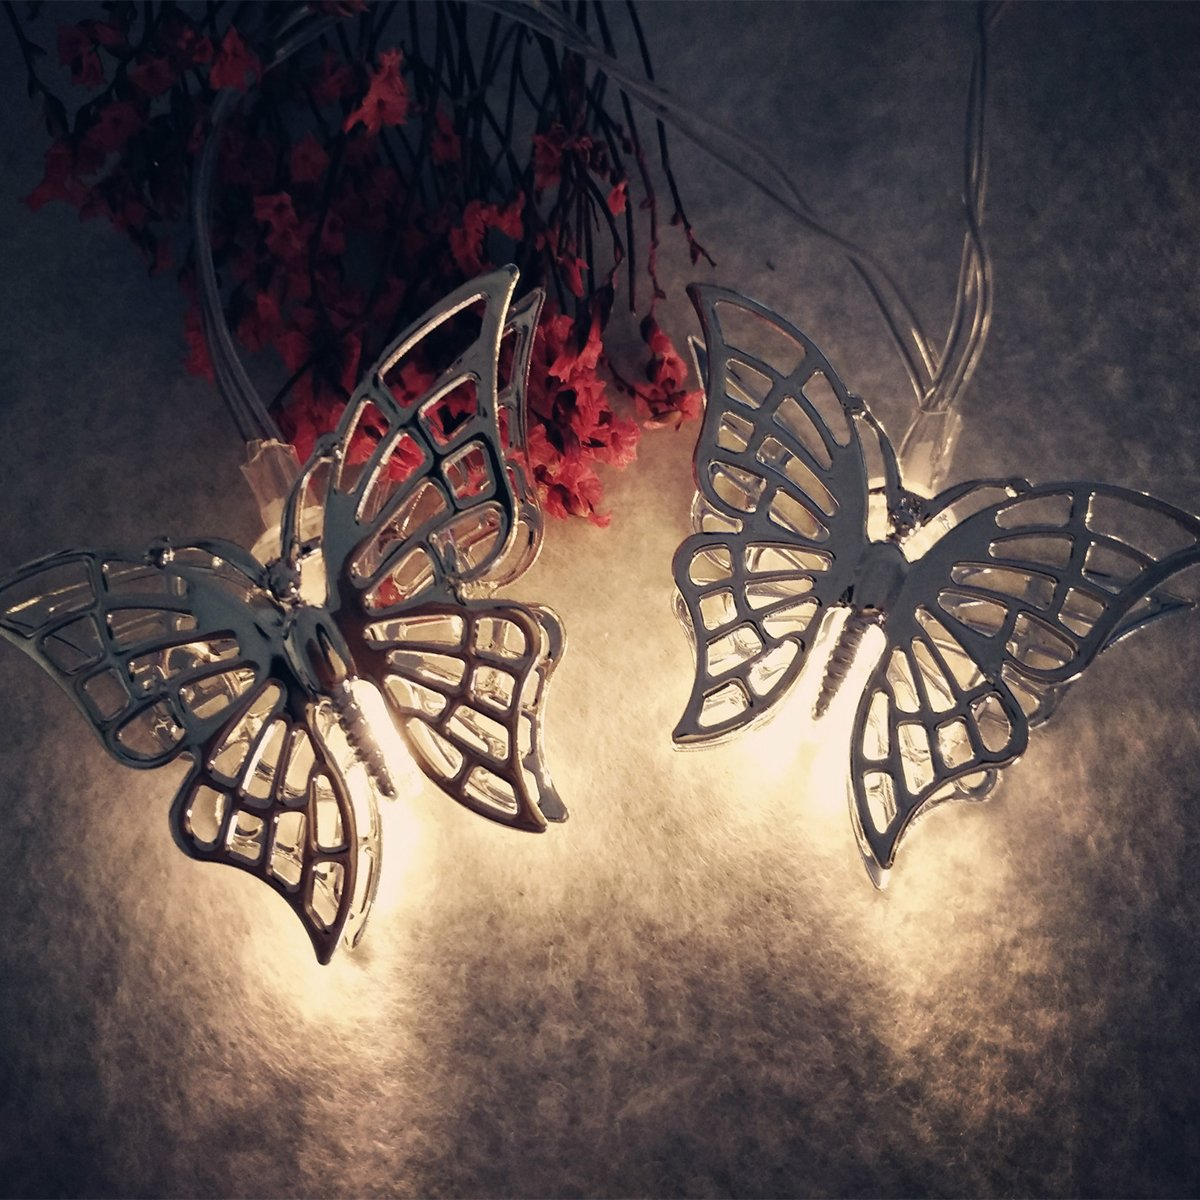 fantastic me 10ft 20 LED Iron Butterfly Fairy String Lights Night Lamp-Battery Powered-Decoration for Home Bedroom Kids Nursery Room Christmas Tree Wedding Party Garden by fantastic me (Image #5)